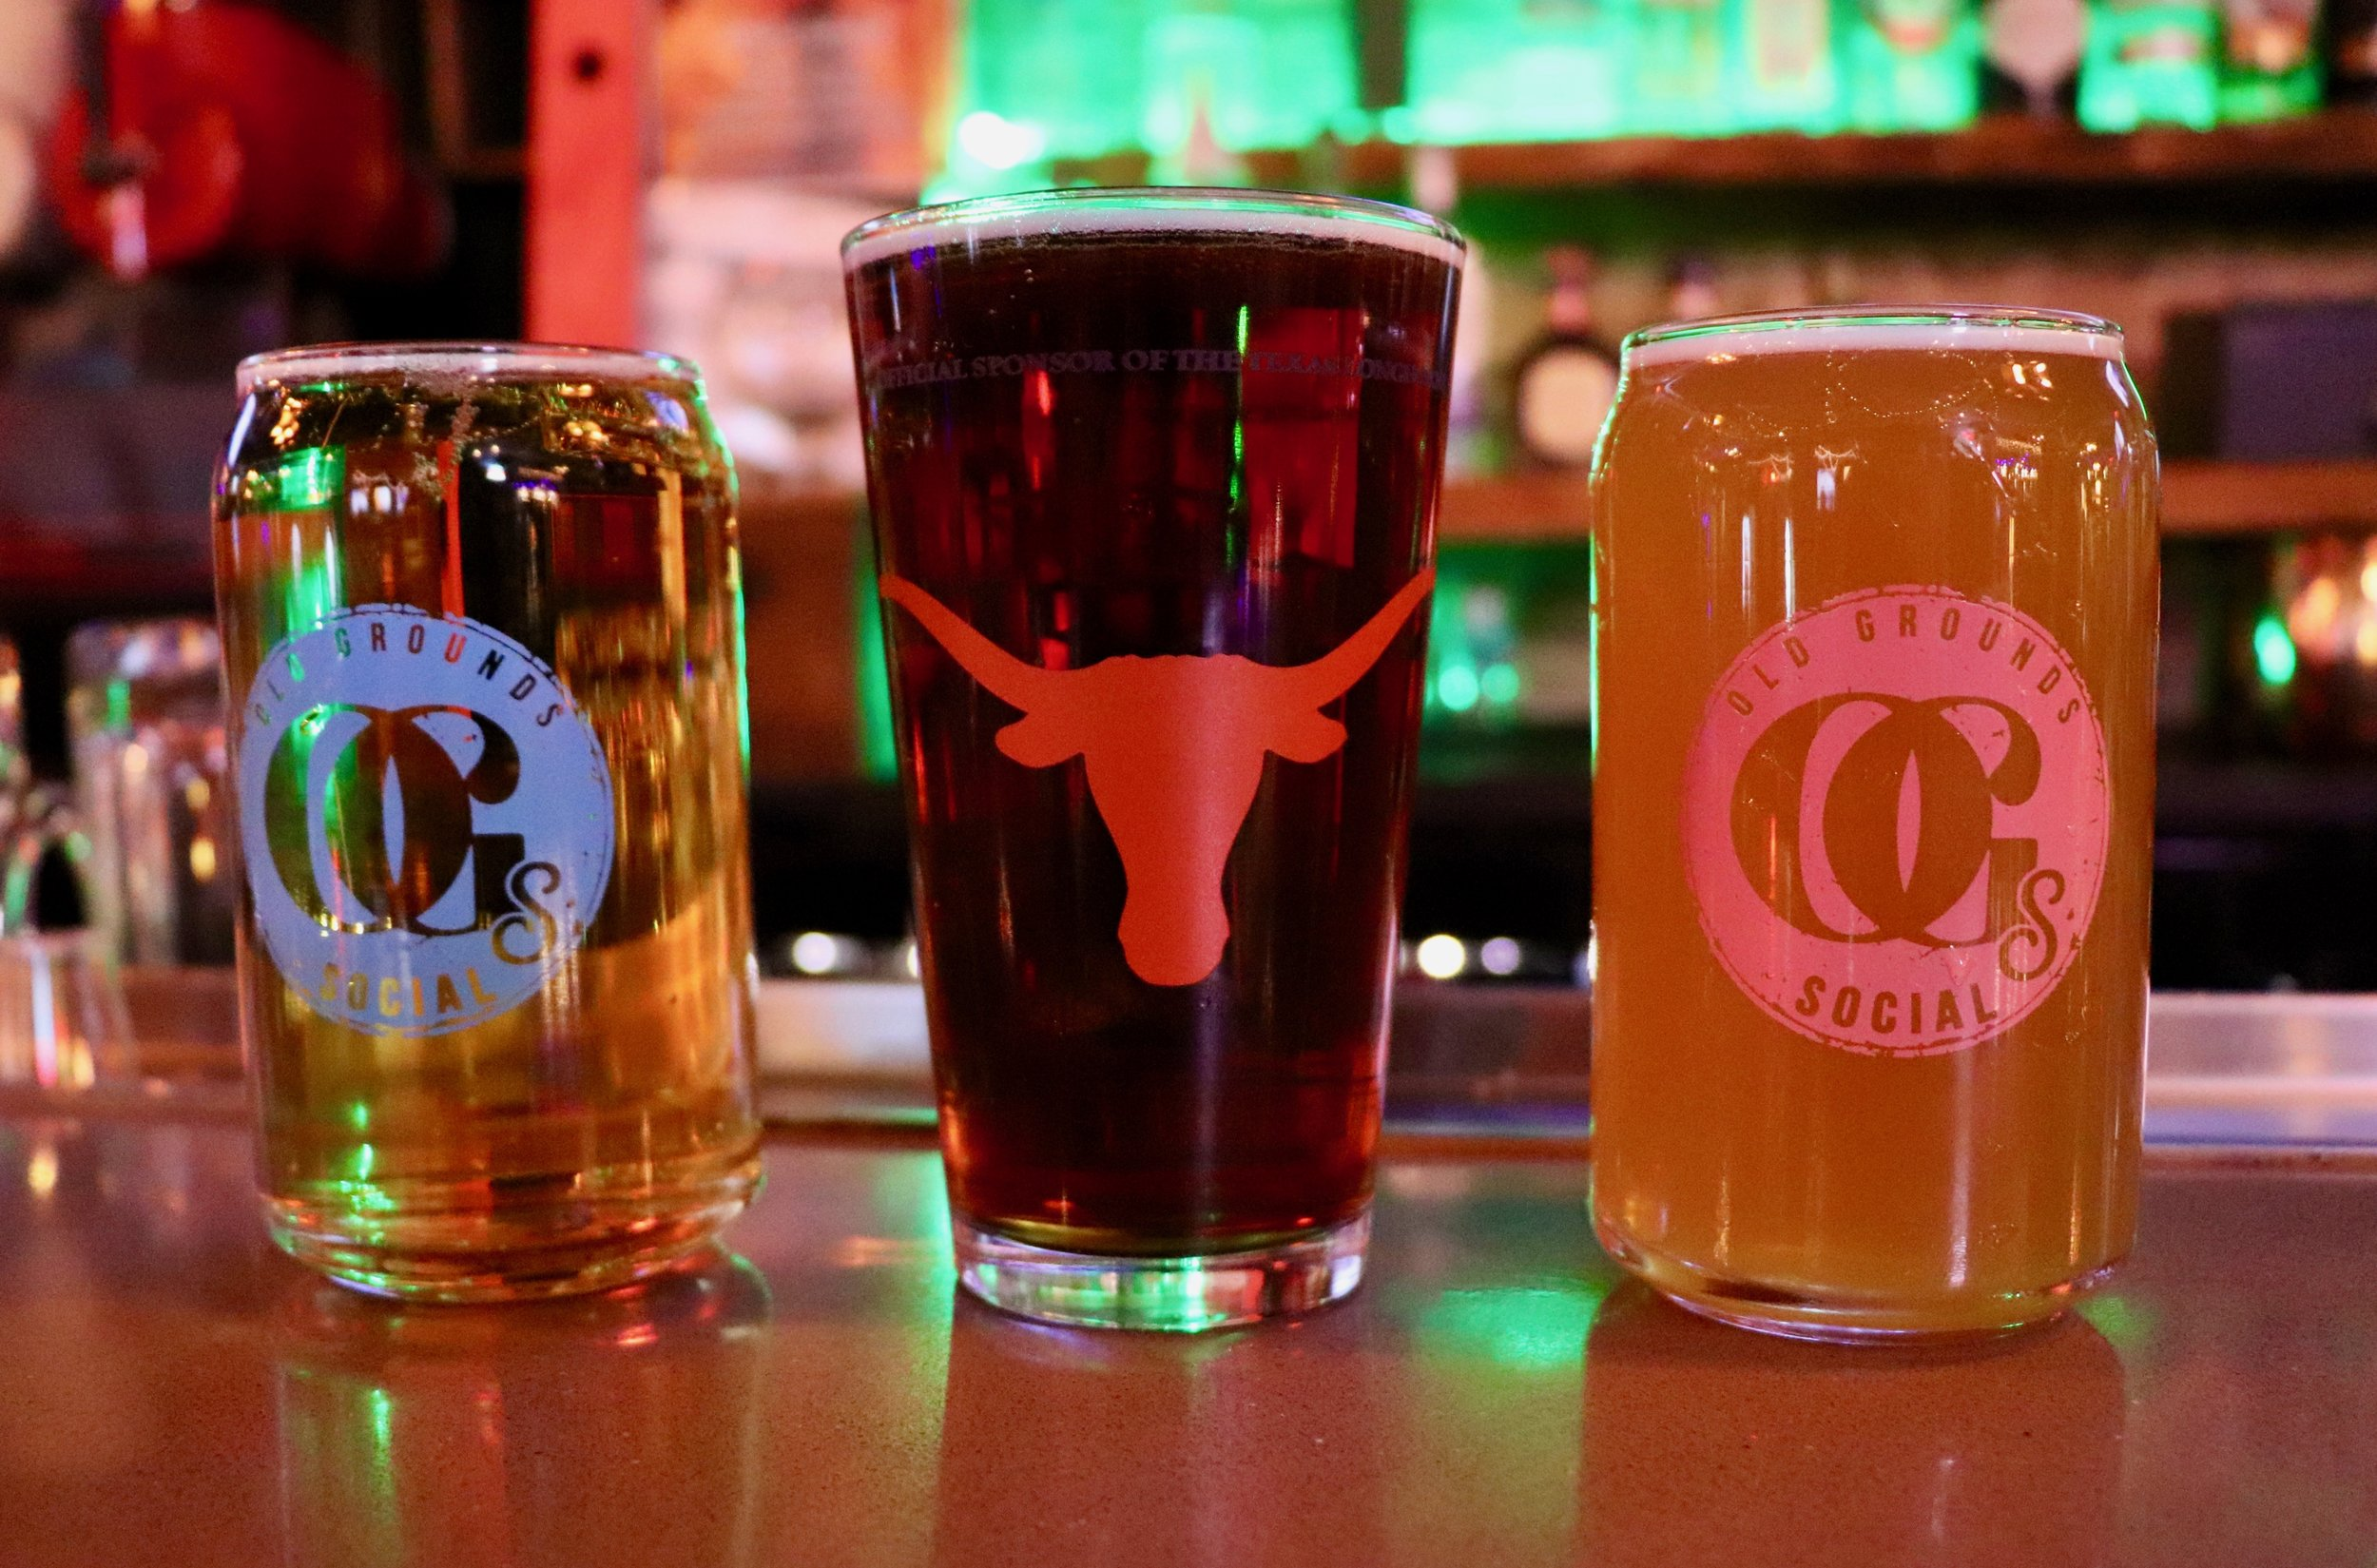 Saturday Texas games  $10 Light the Tower Orange (Tito's and Orange Red Bull) | $8 Texas Tea | $8 Okay Cool, Hook'em Bomb (Deep Eddy & Red Bull) | $5 Shiner Bock | $4 Lone star | $4 Miller Lite draft